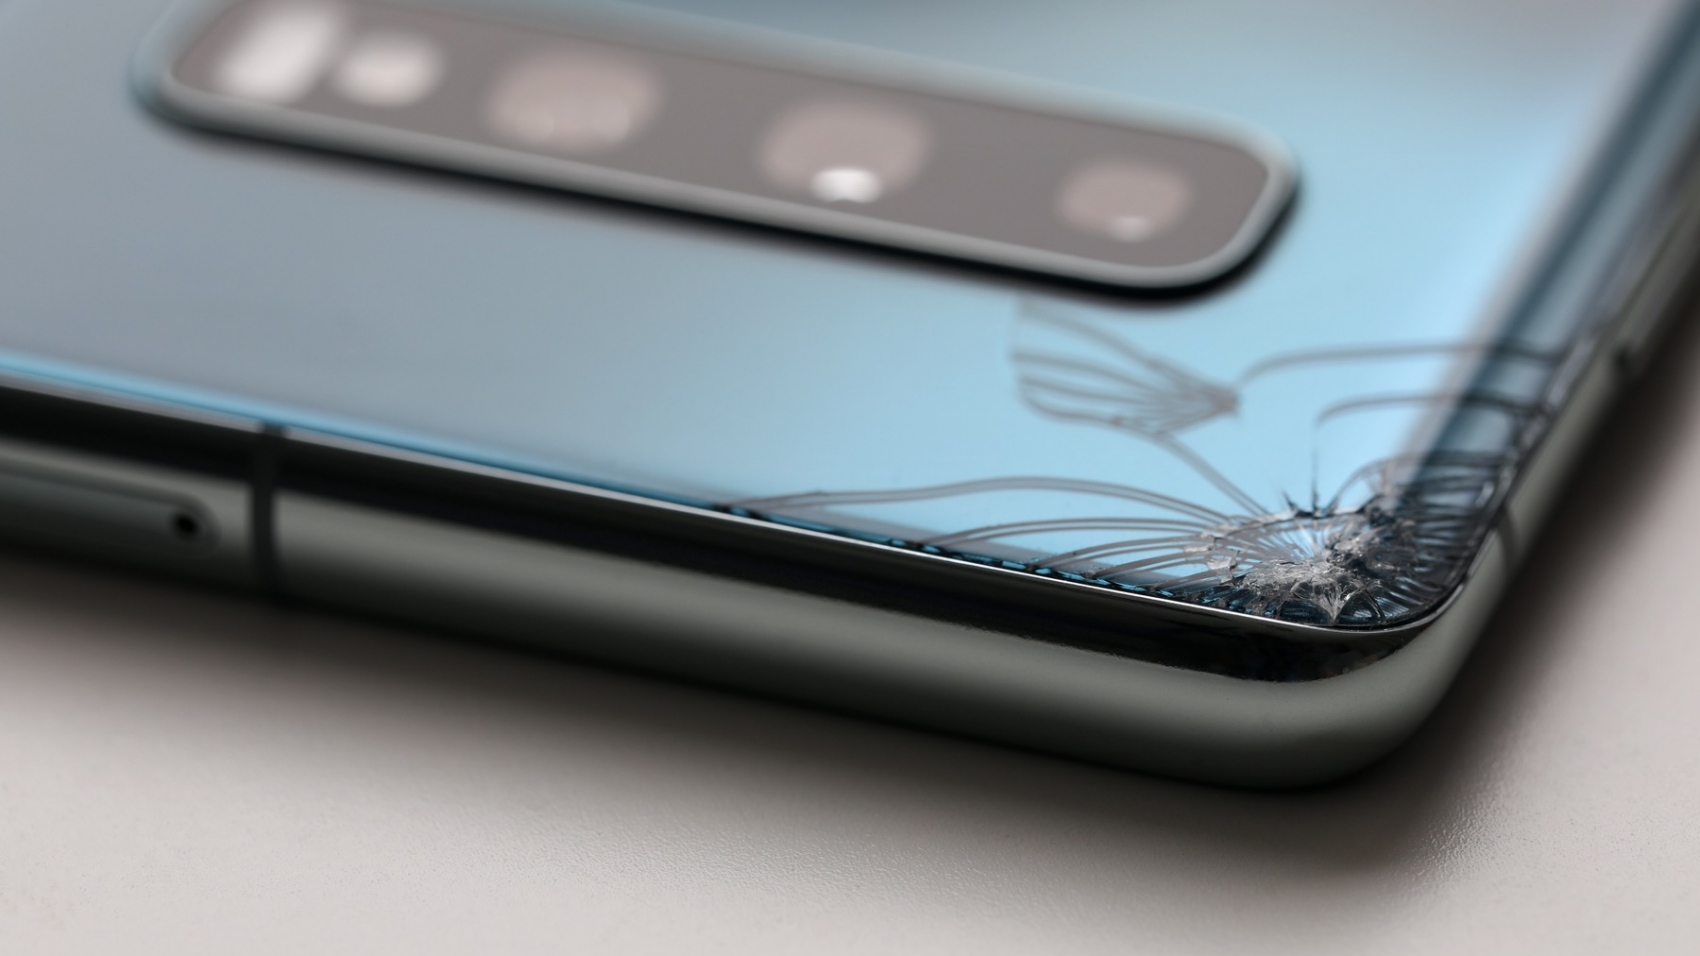 modern-smartphone-lying-table-with-crack-corner-close-up